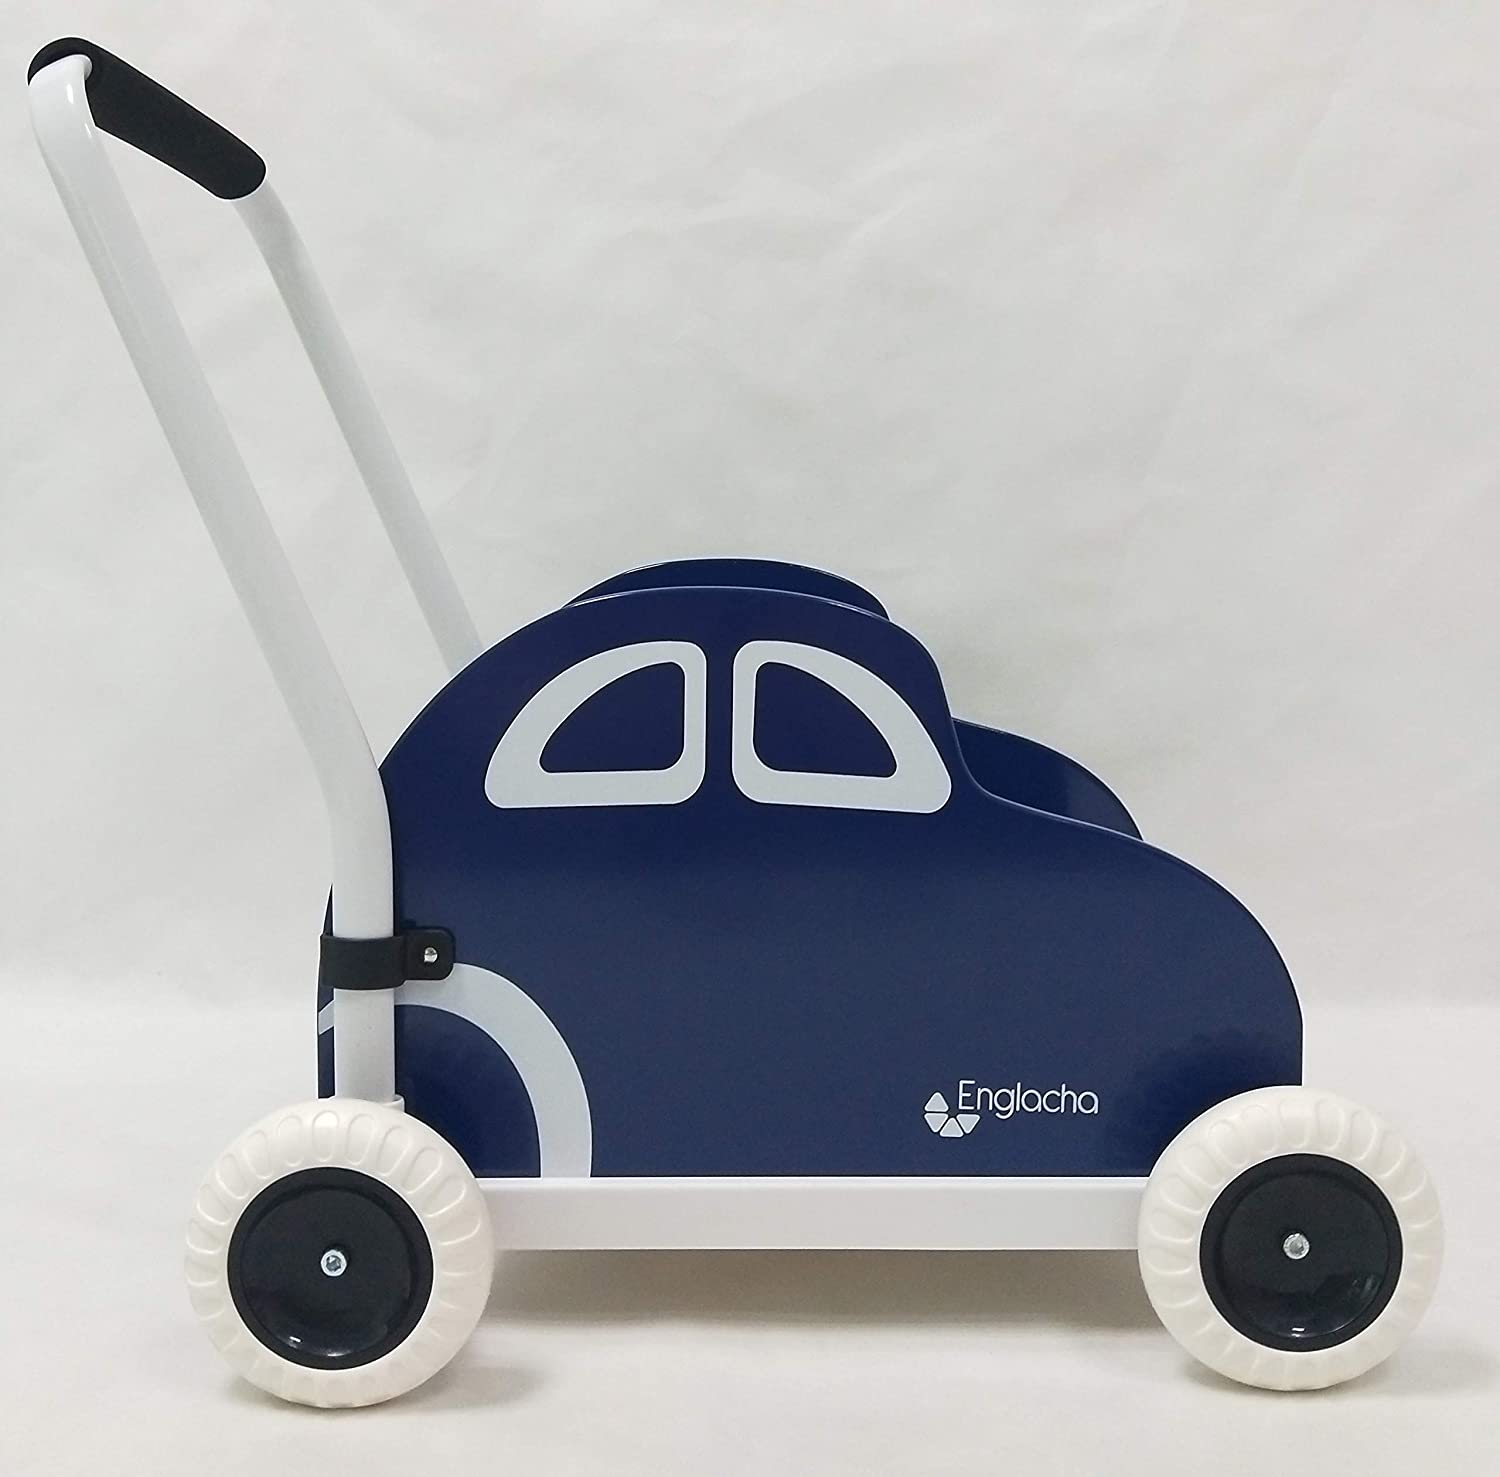 Englacha car Musical Toddler Walker, Baby Push Car with Built-in Musical Function and Speed Reduction Wheels, Blue/White